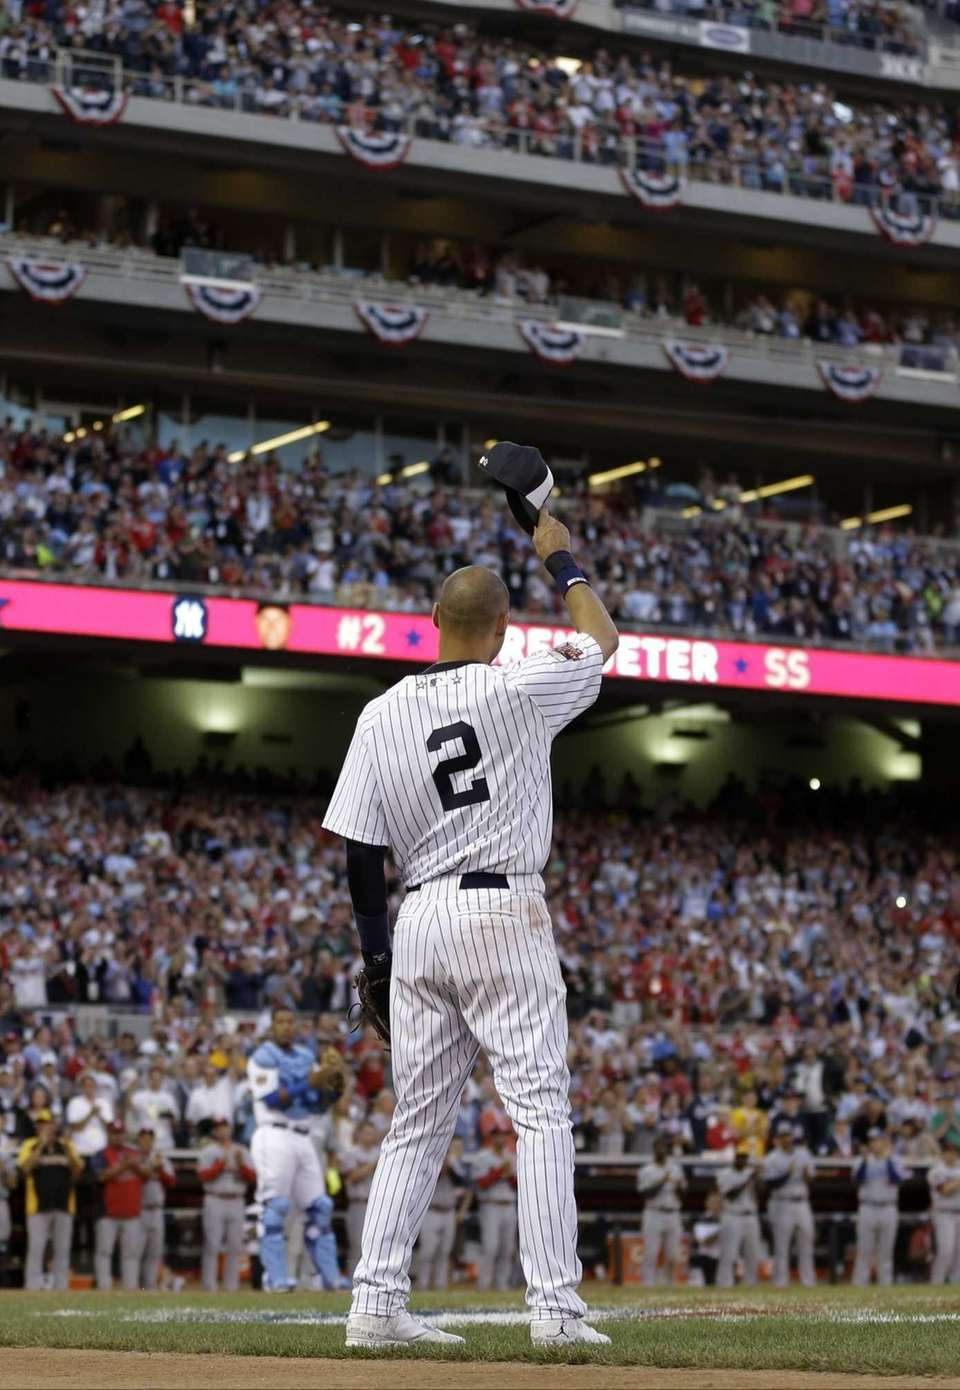 Jeter started at shortstop in his final All-Star